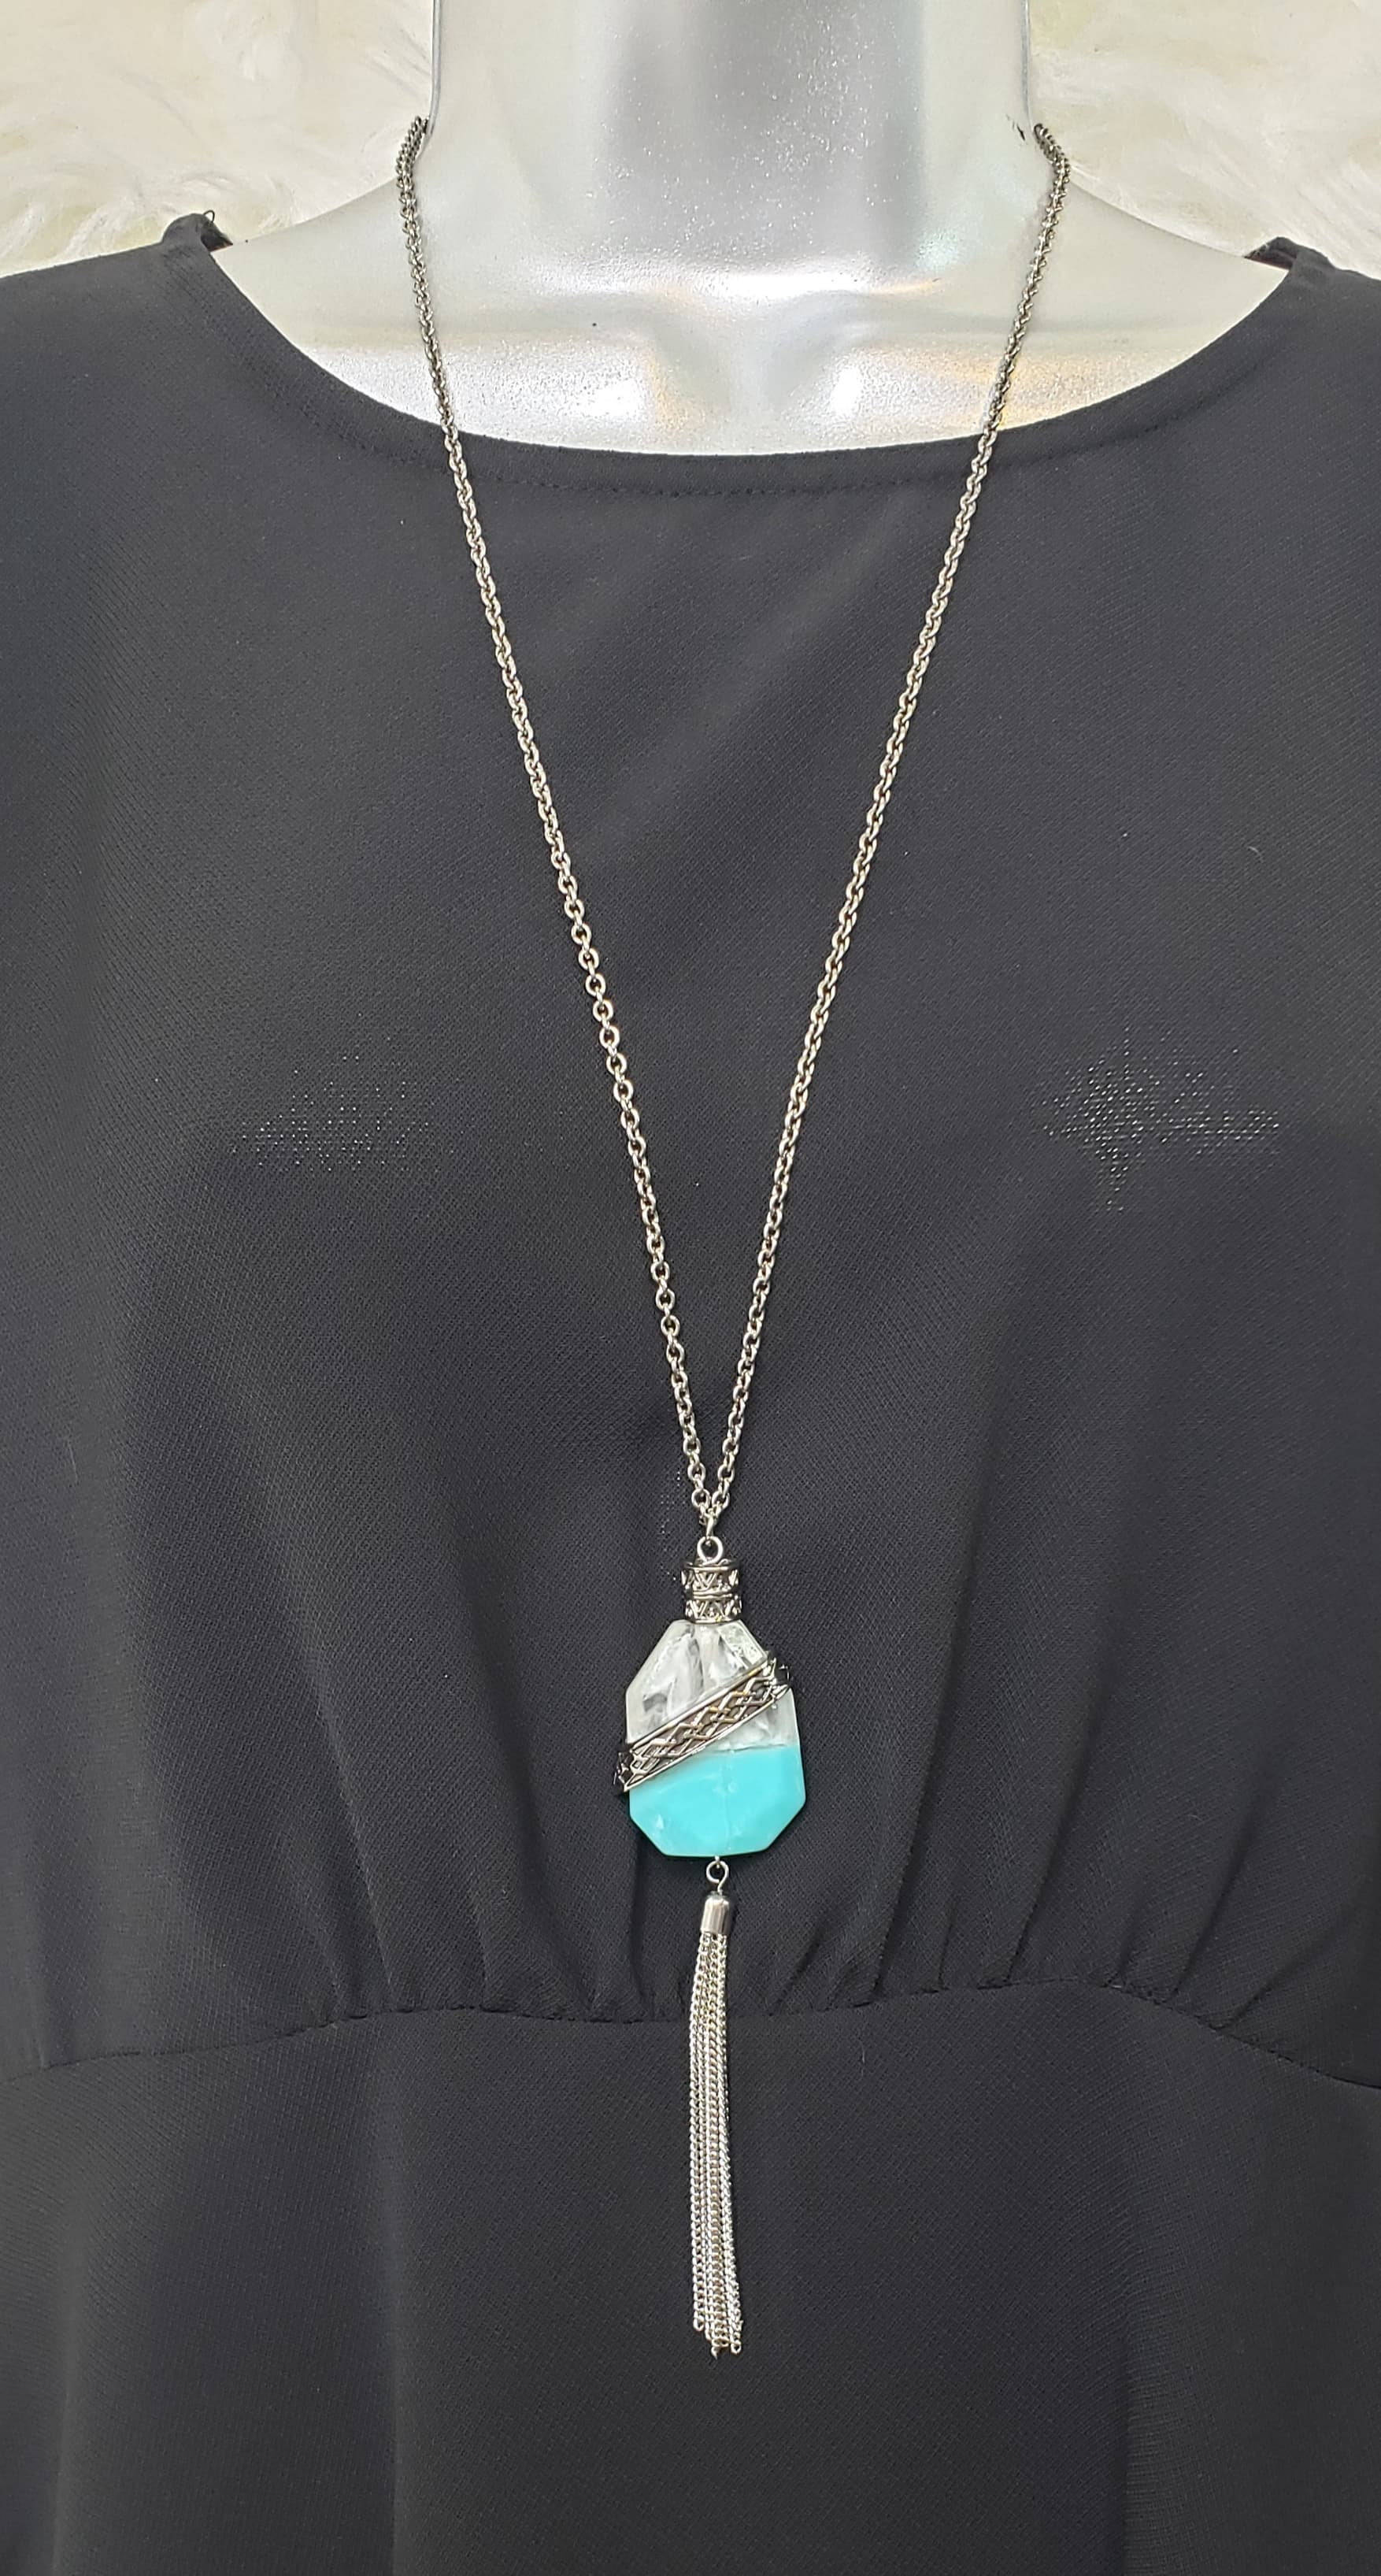 Turquoise Gem Necklace - Altered Apparel Boutique